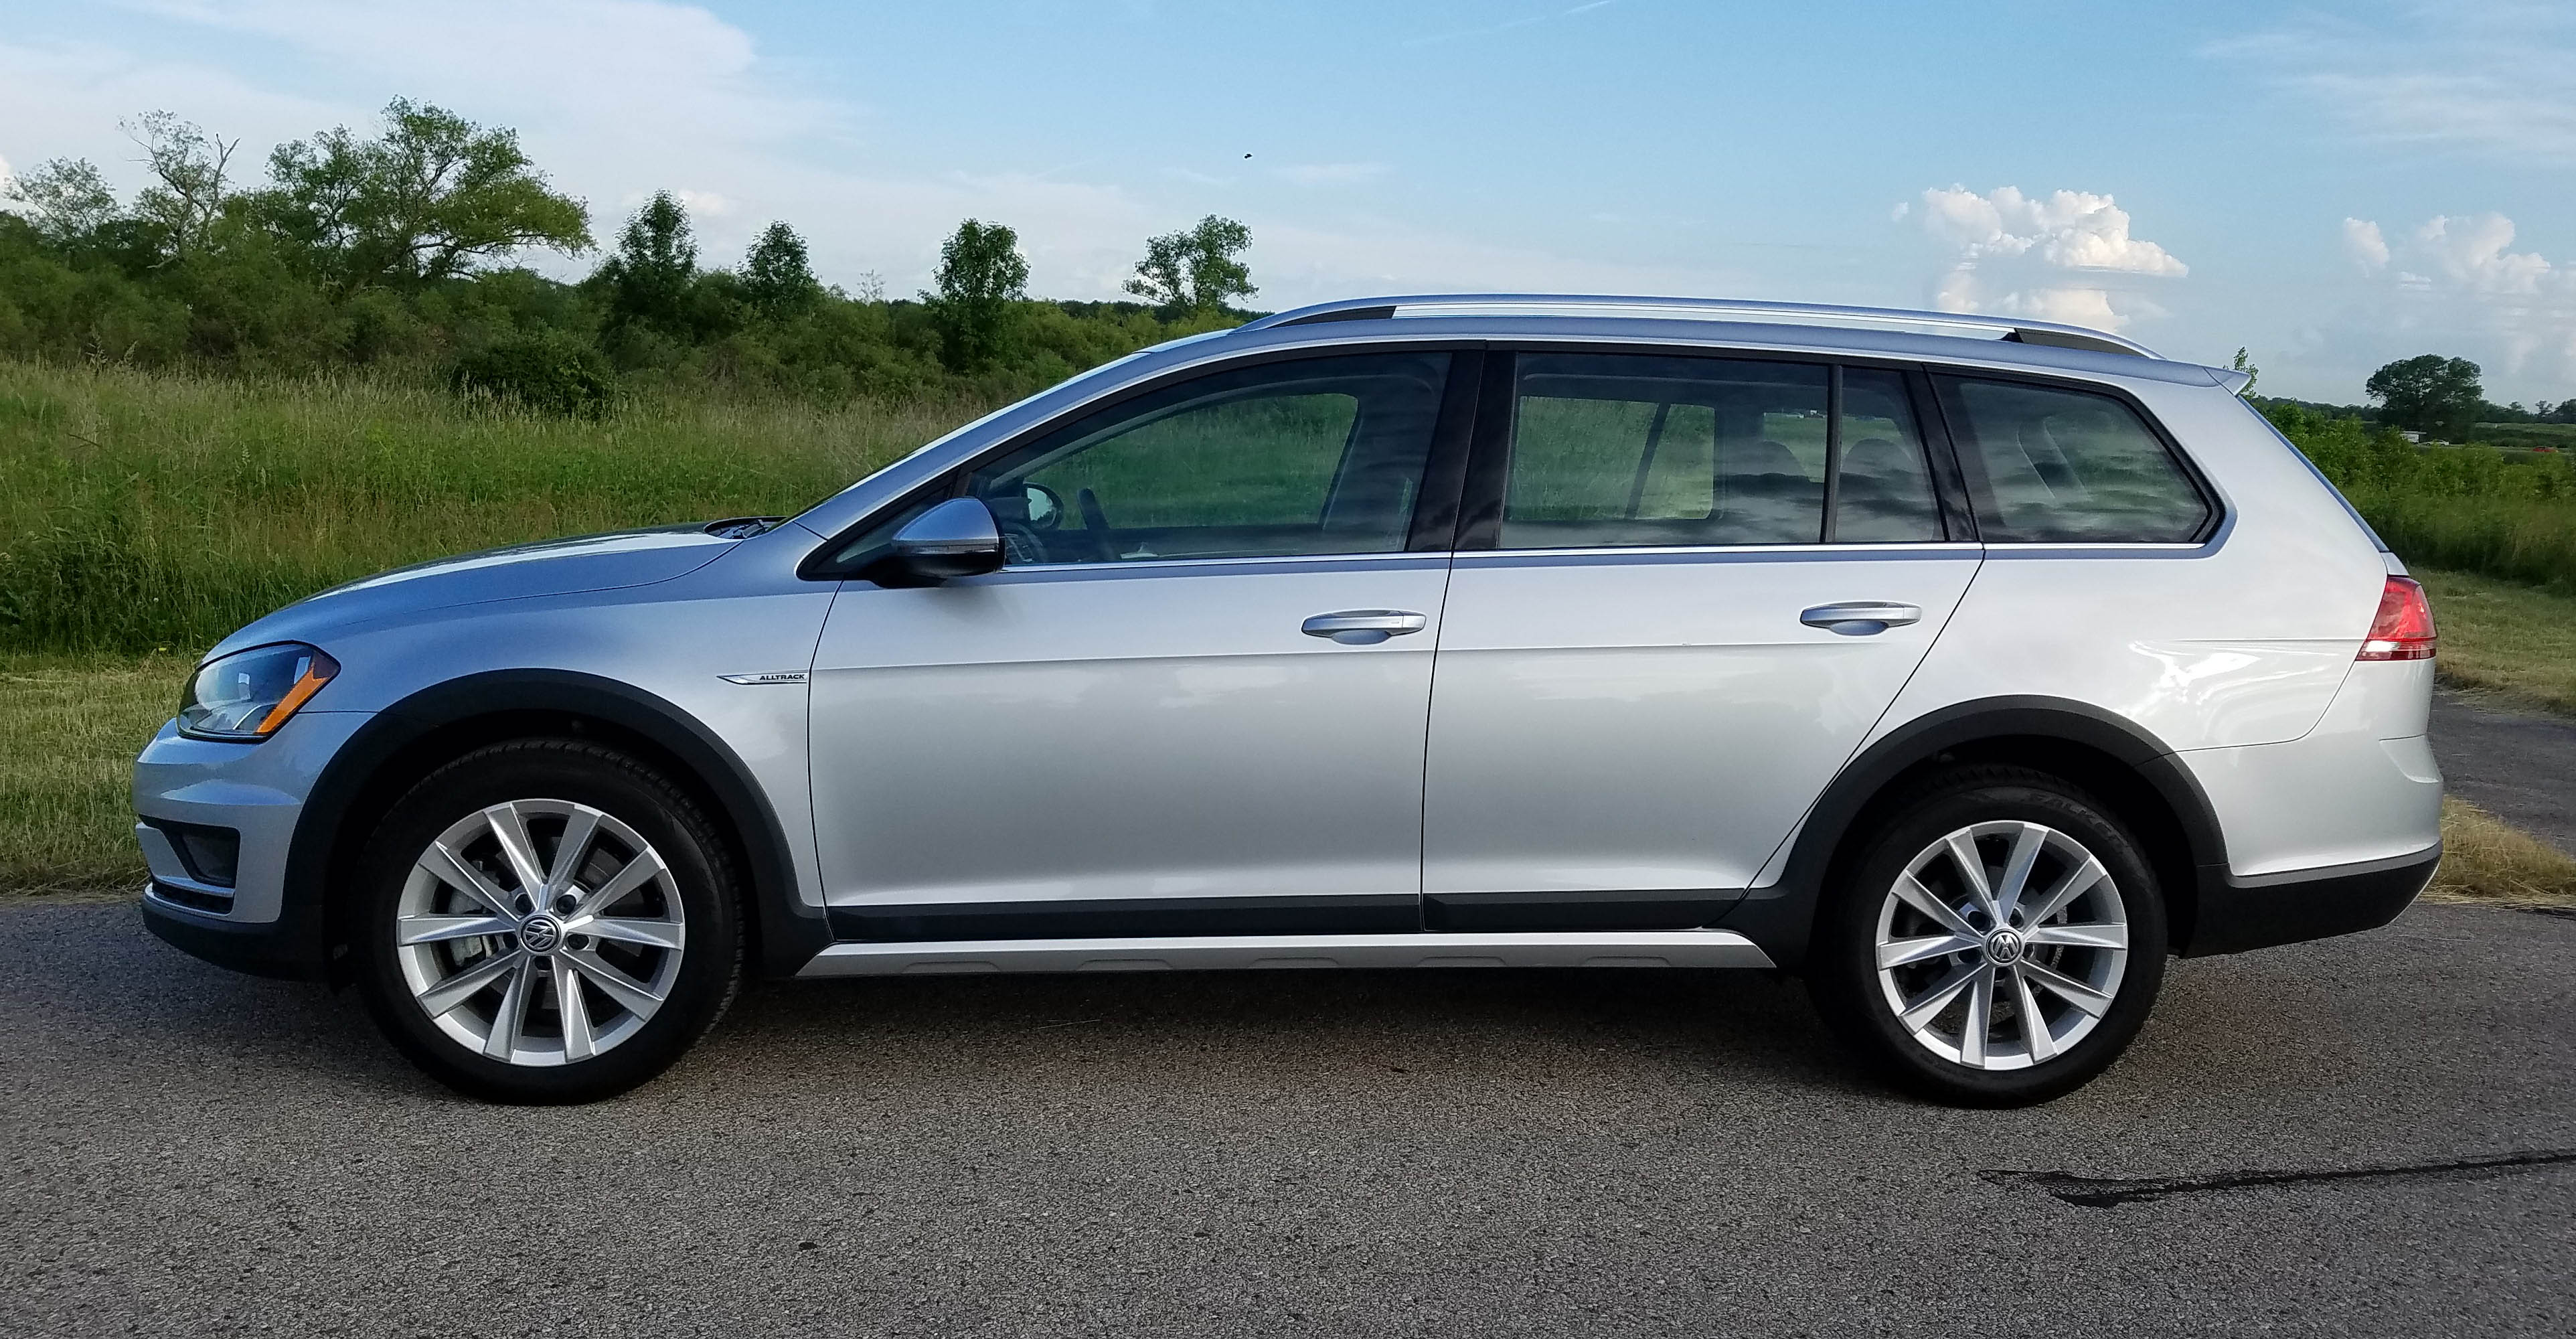 Volkswagen Golf Alltrack TSI SE Savage On Wheels - Vw alltrack invoice price